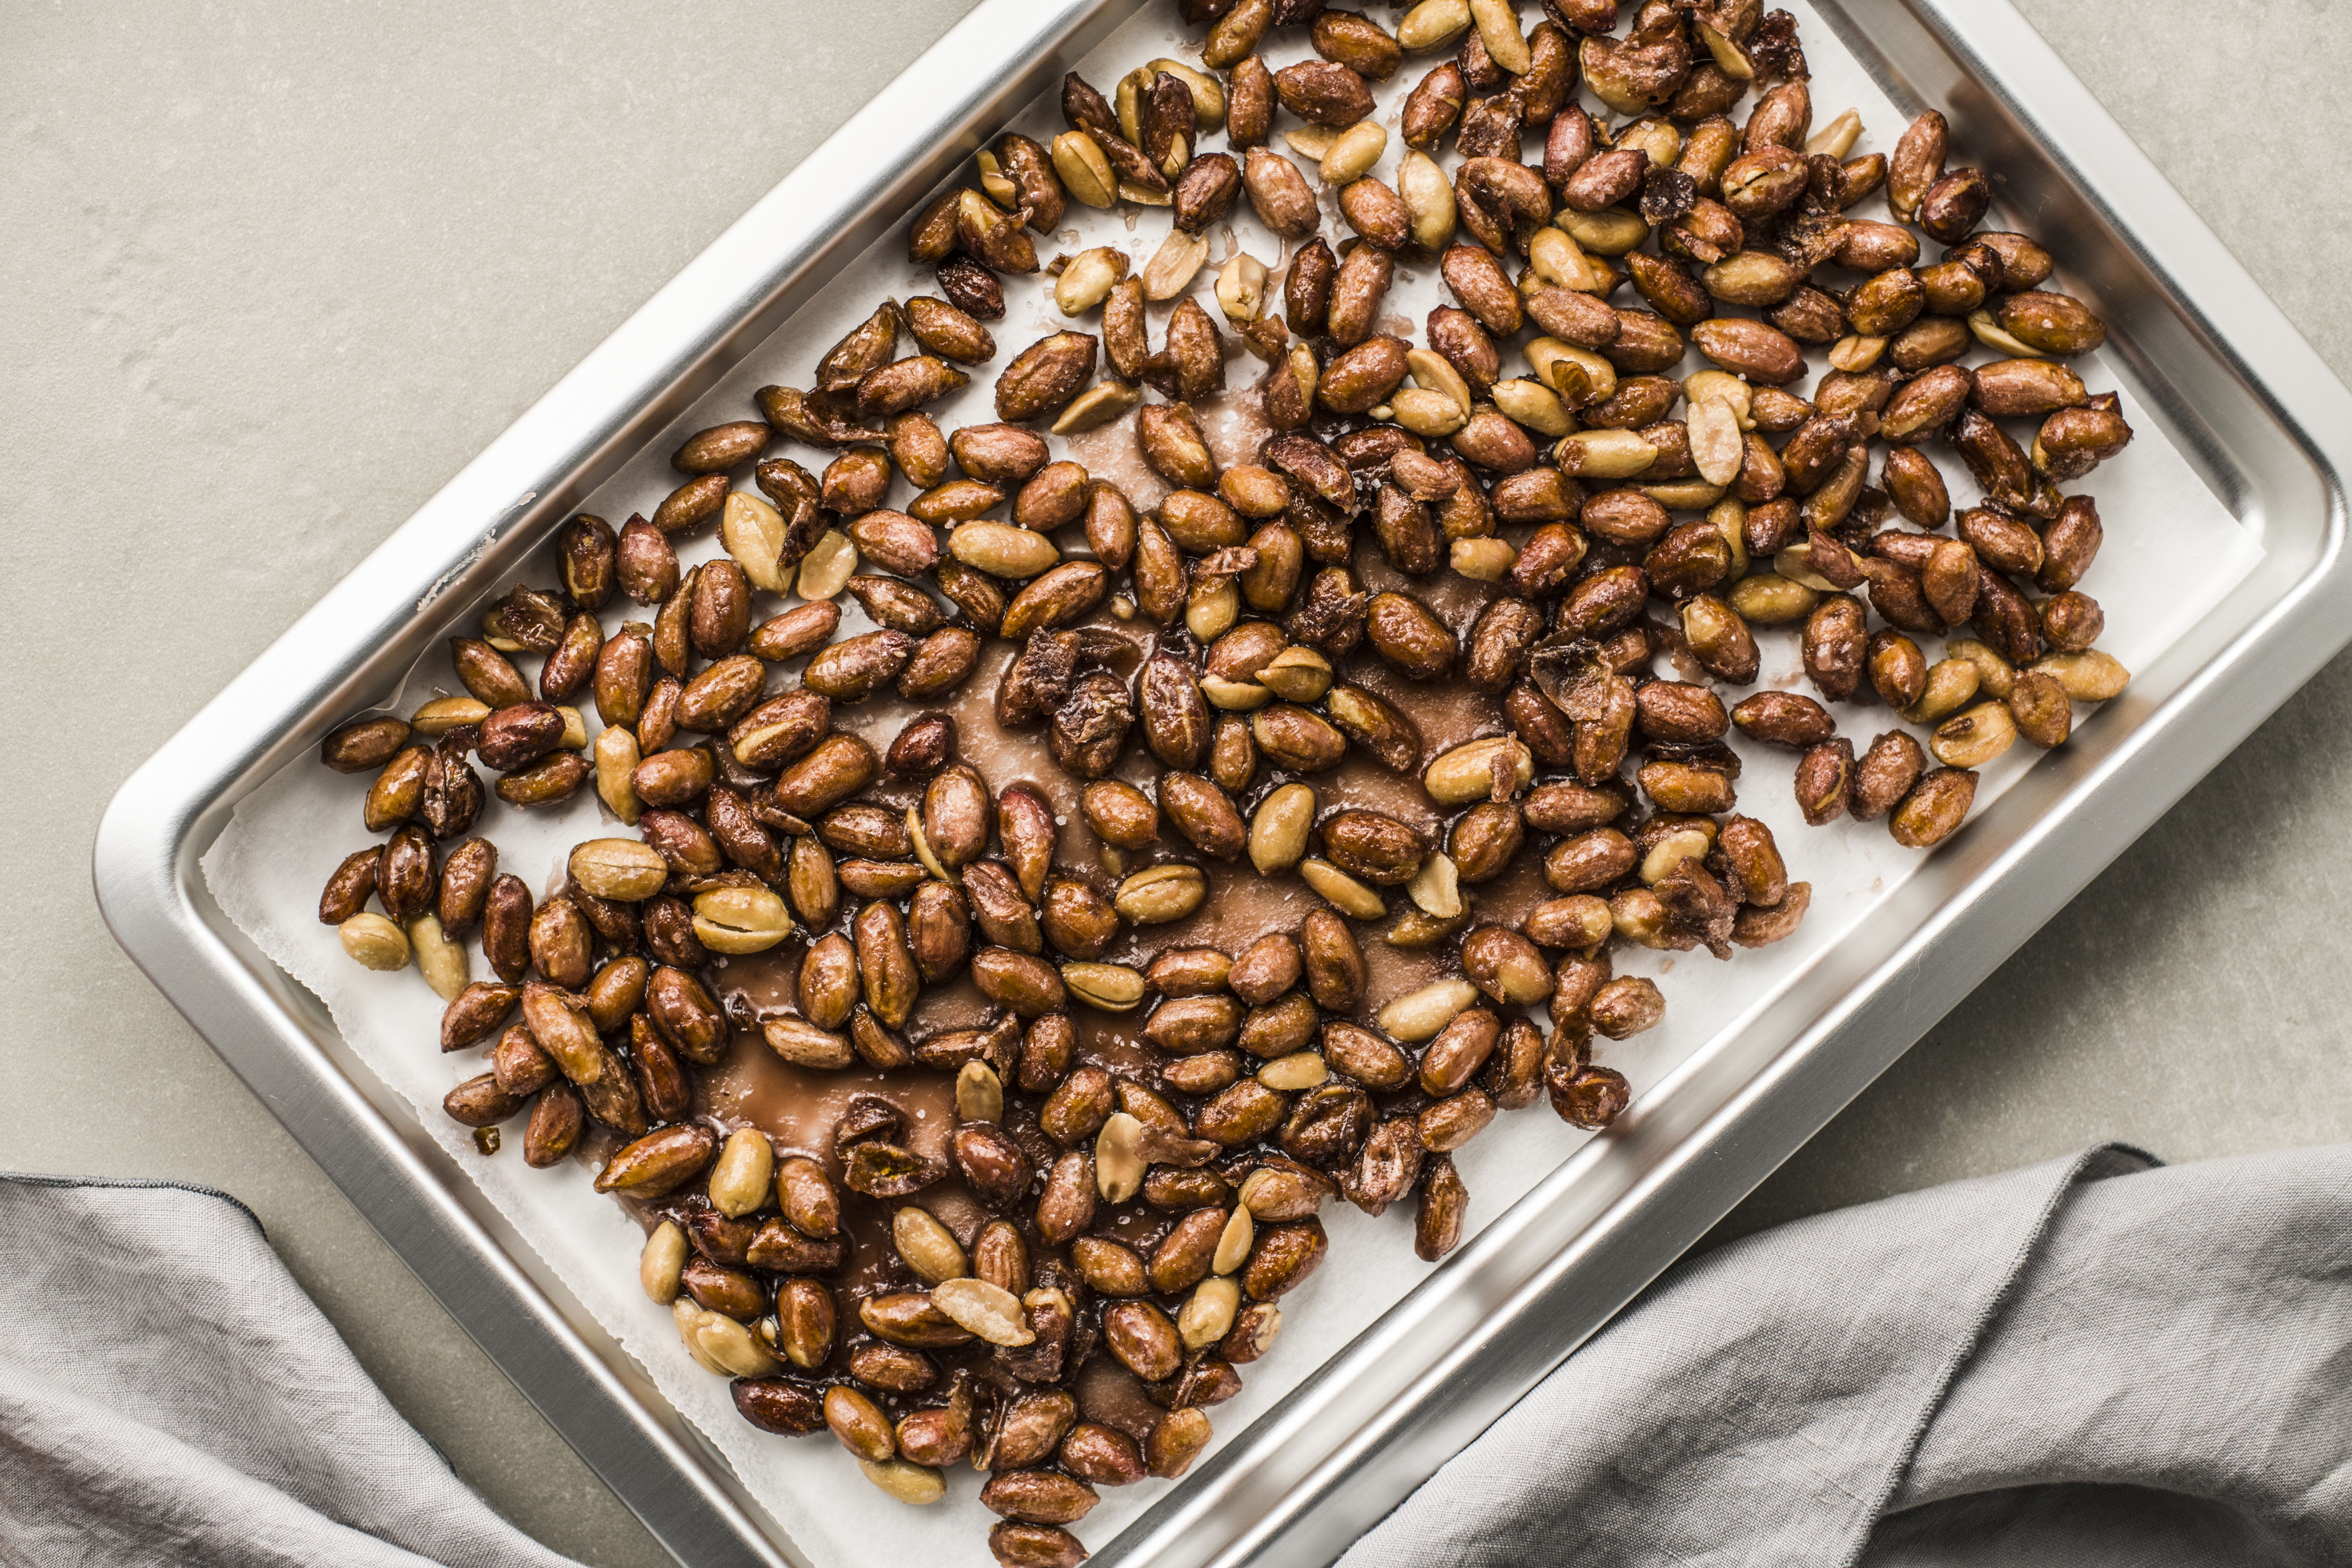 Spread peanuts onto prepared pan to cool